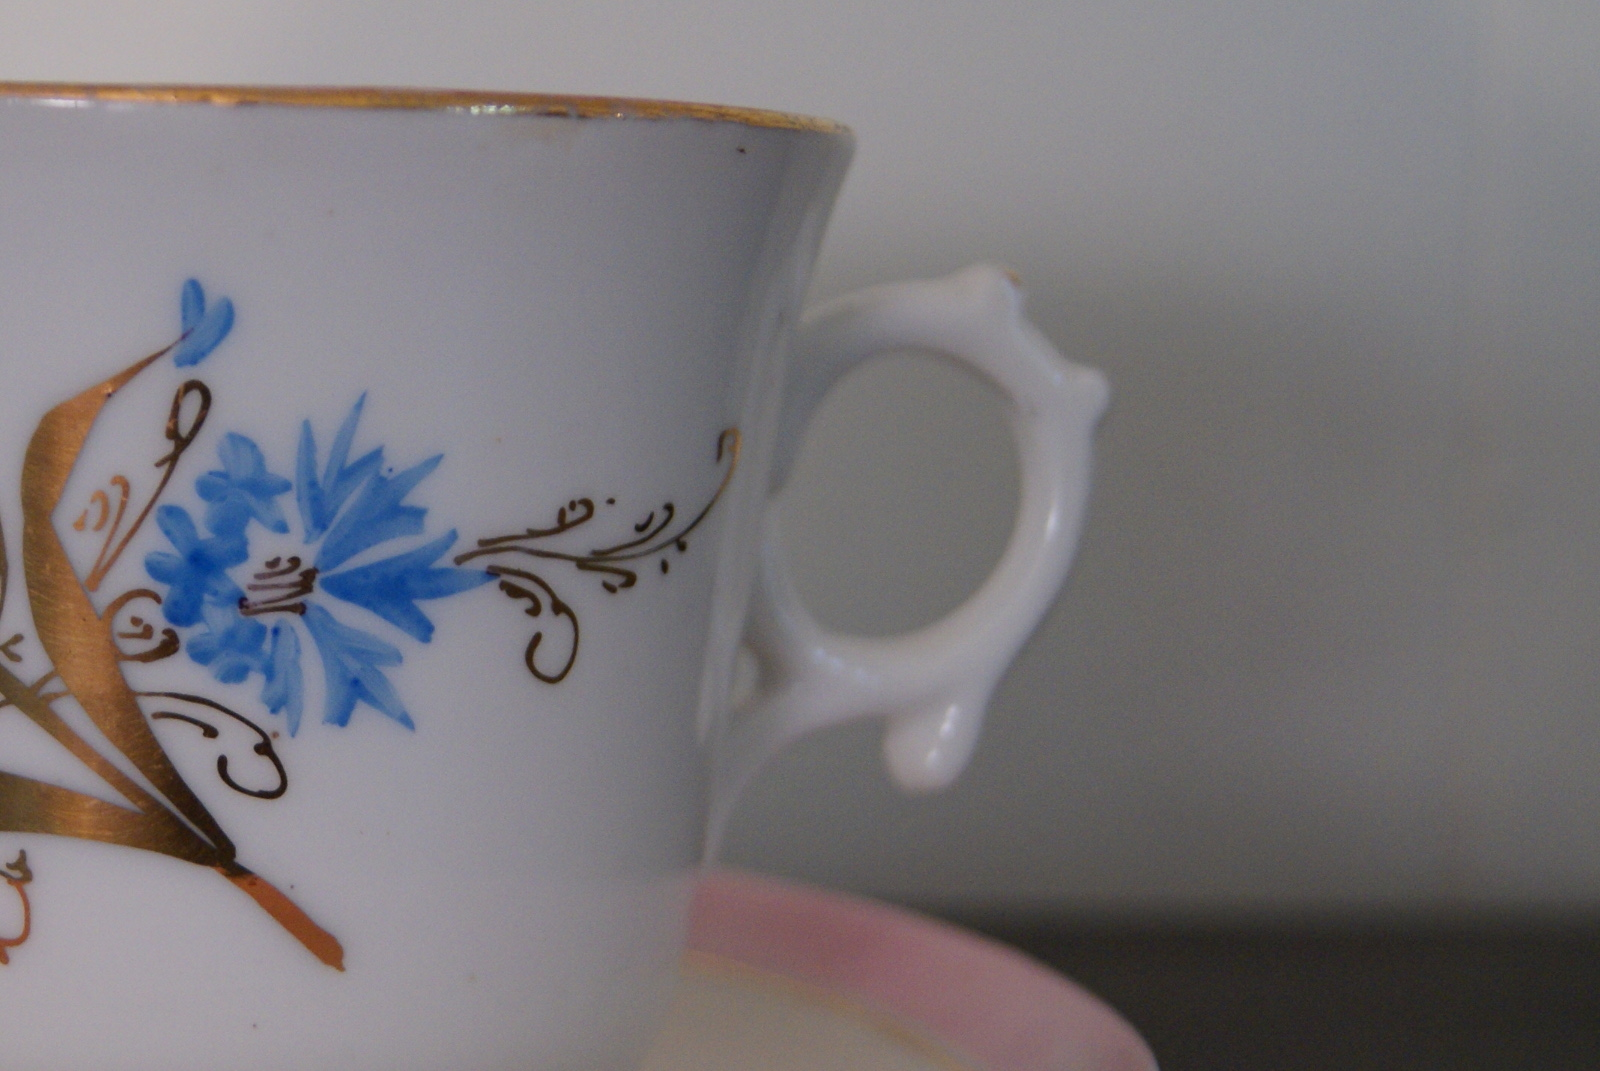 Waldenburg - Altwasser tea cup with saucer decorated with blue flowers, golden leaves and pink rim